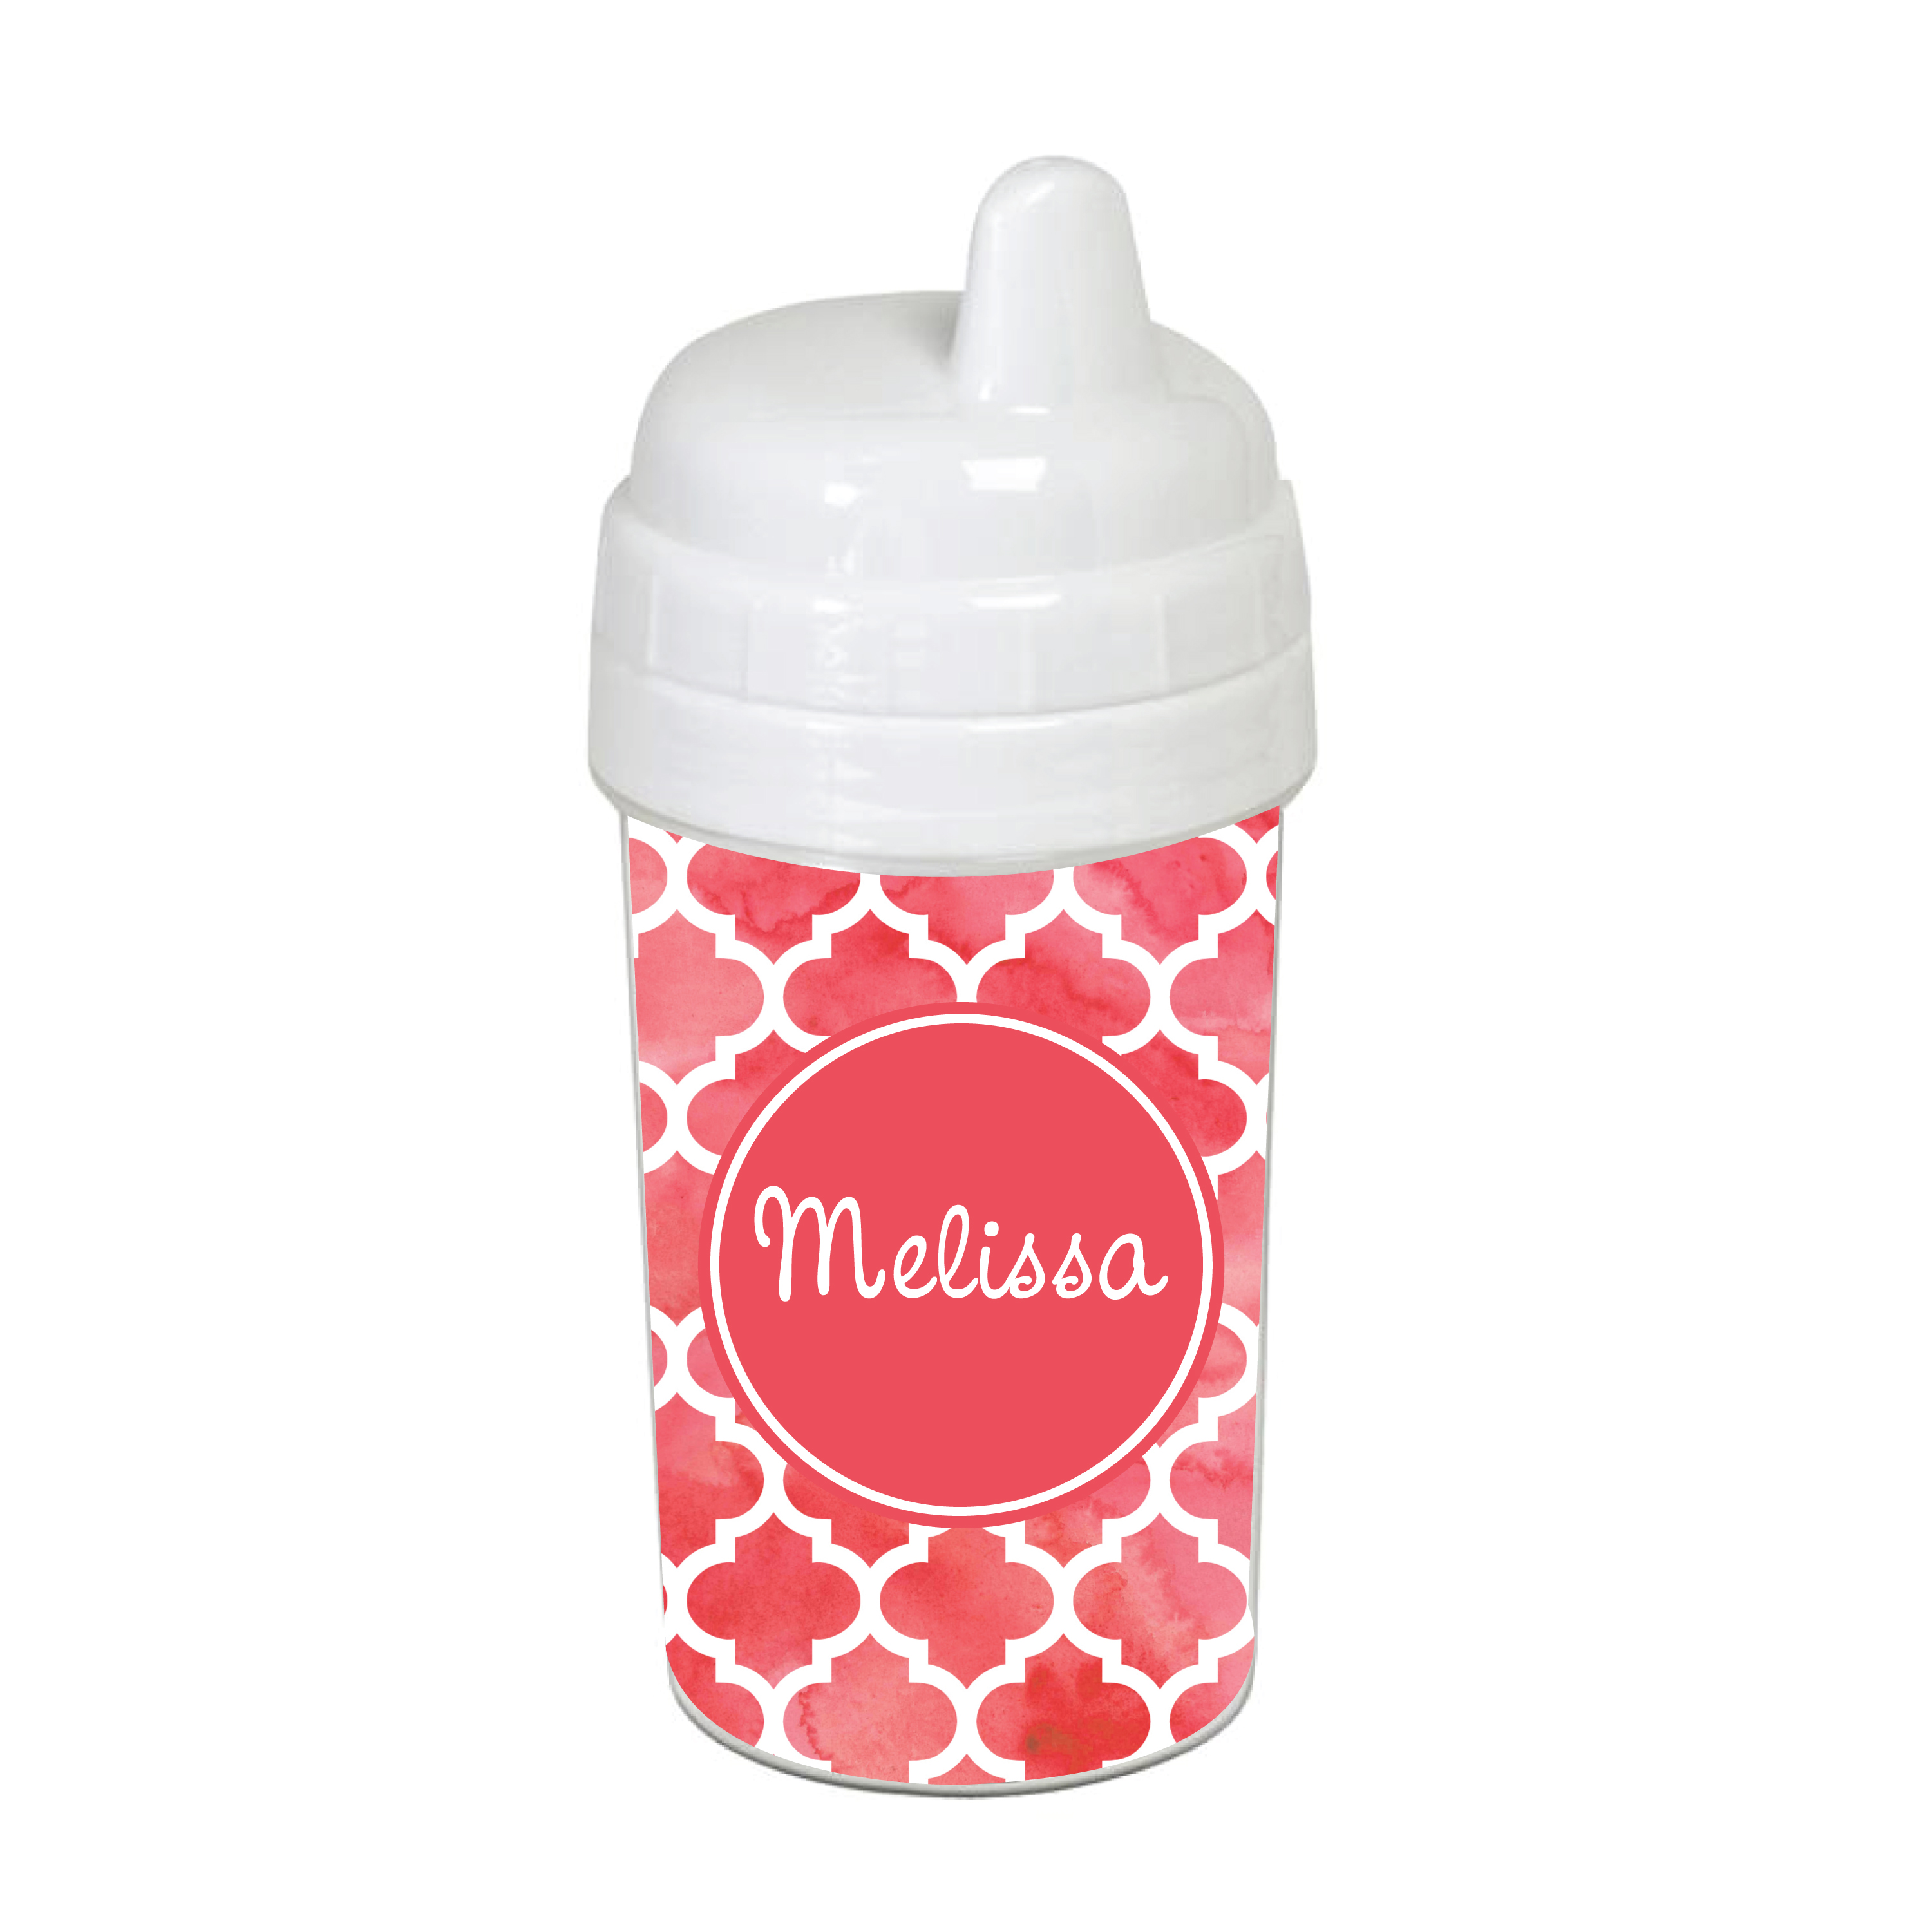 33cfeef257e Watercolor Quarterfoil 10 oz. Custom Spill Proof Sippy Cup